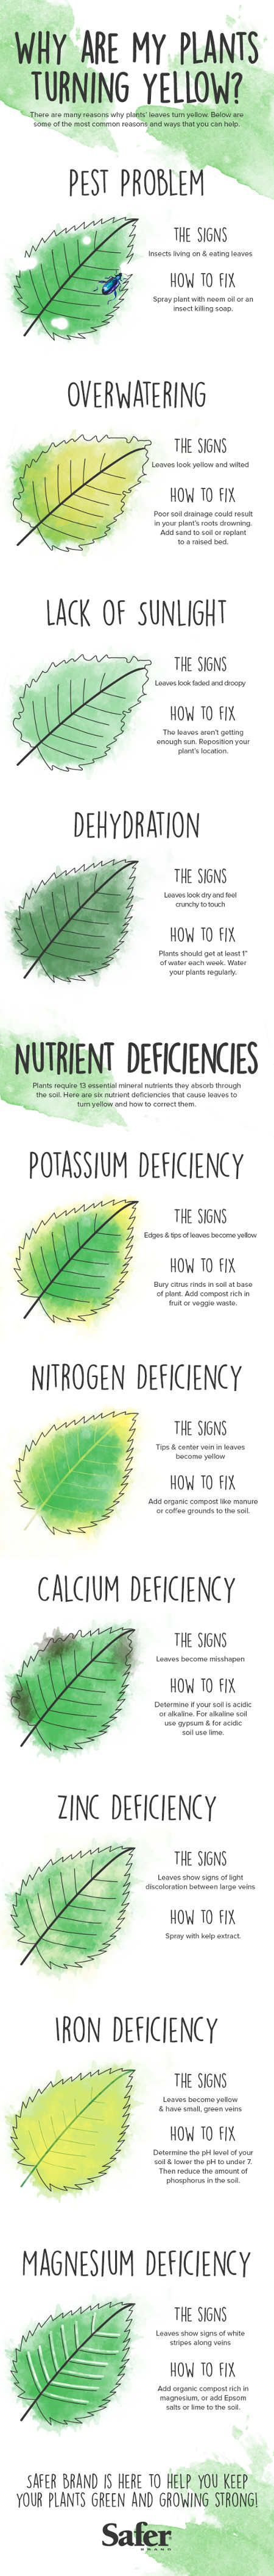 Plant Problems? Diagnose and Cure Them - with this handy chart - The Thrifty Couple